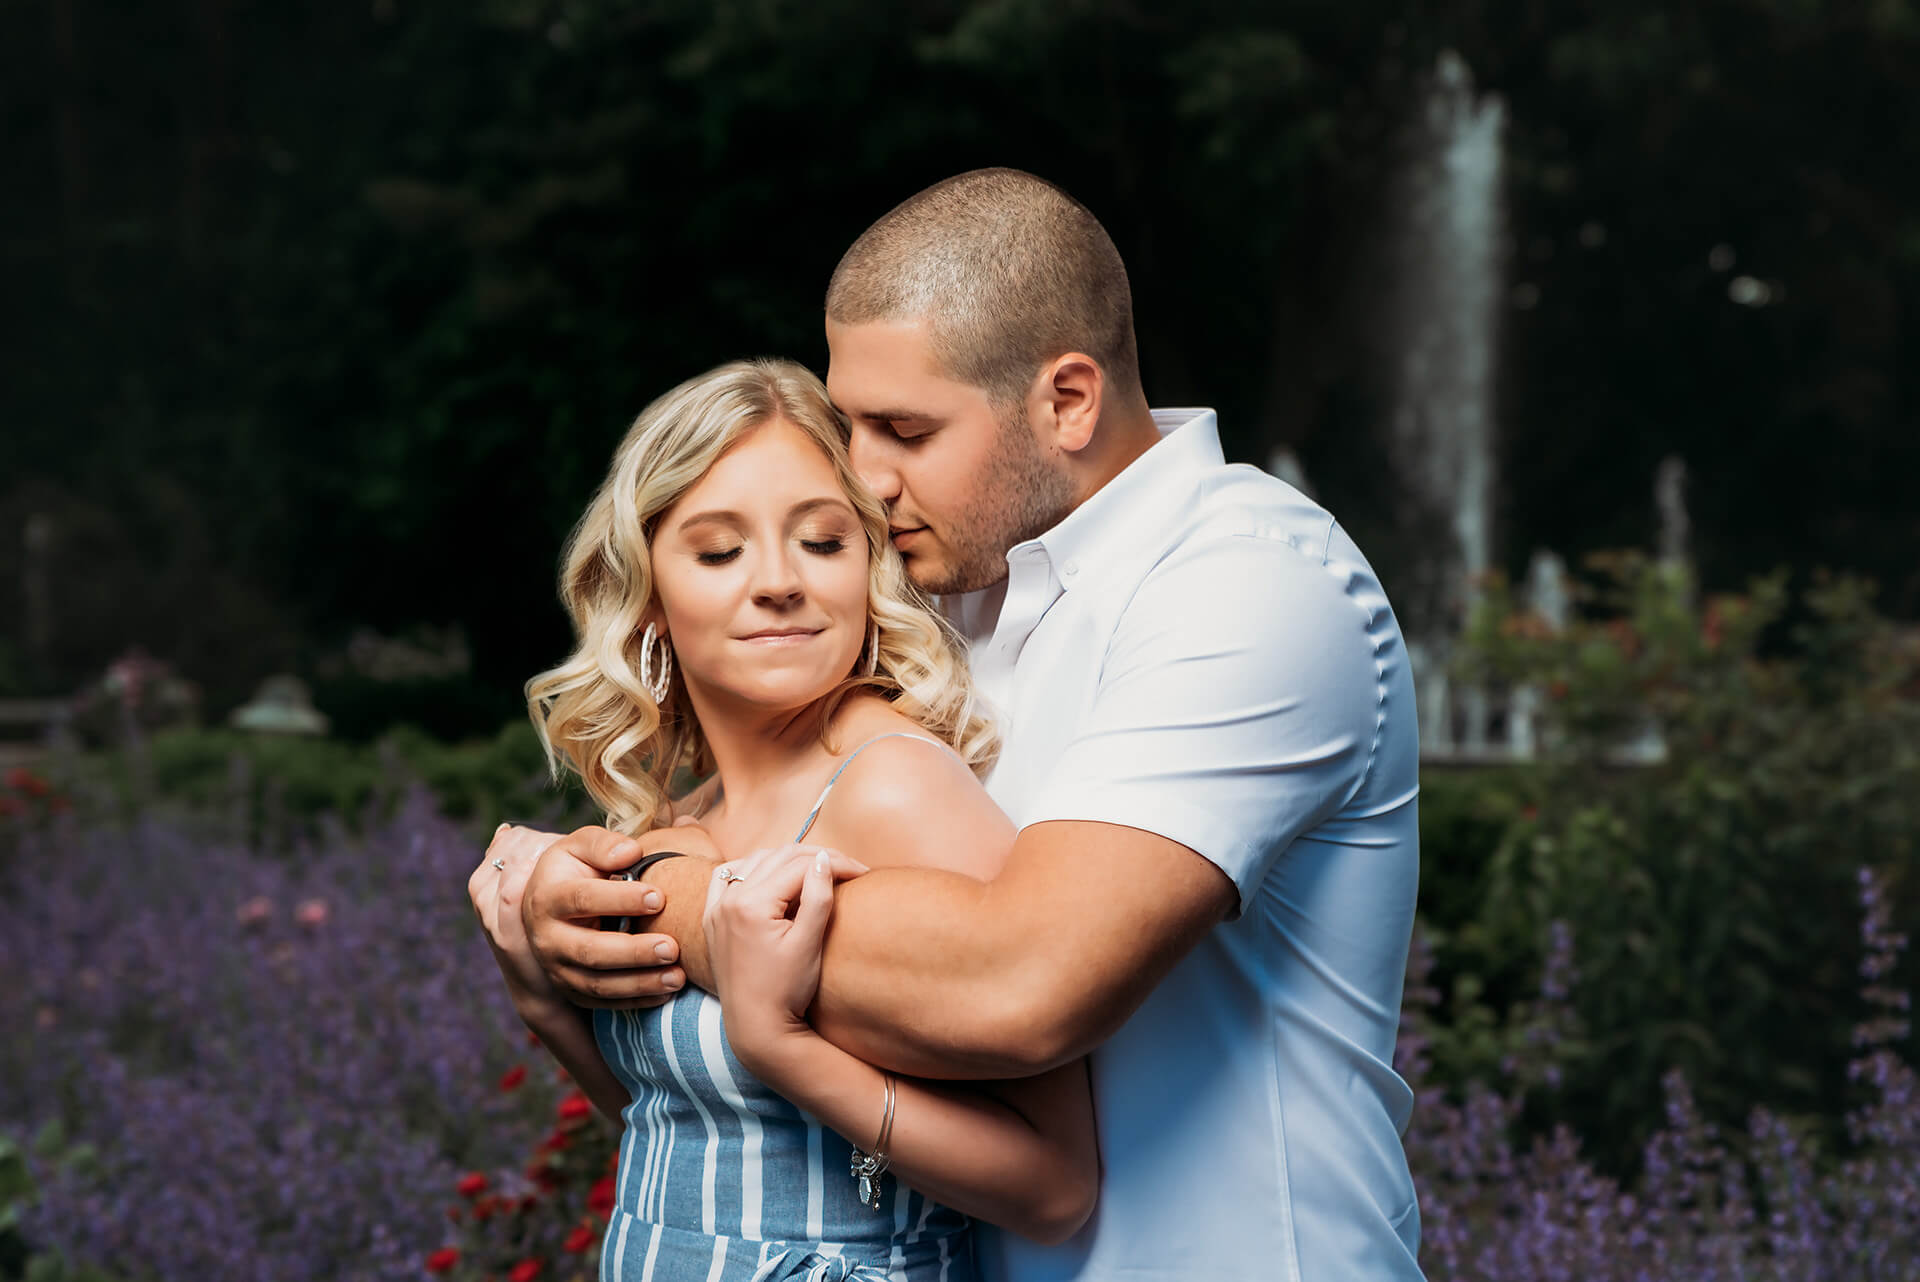 Mill Creek Park engagement photos with attractive young couple embracing each other with flowers and a water fountain in the background